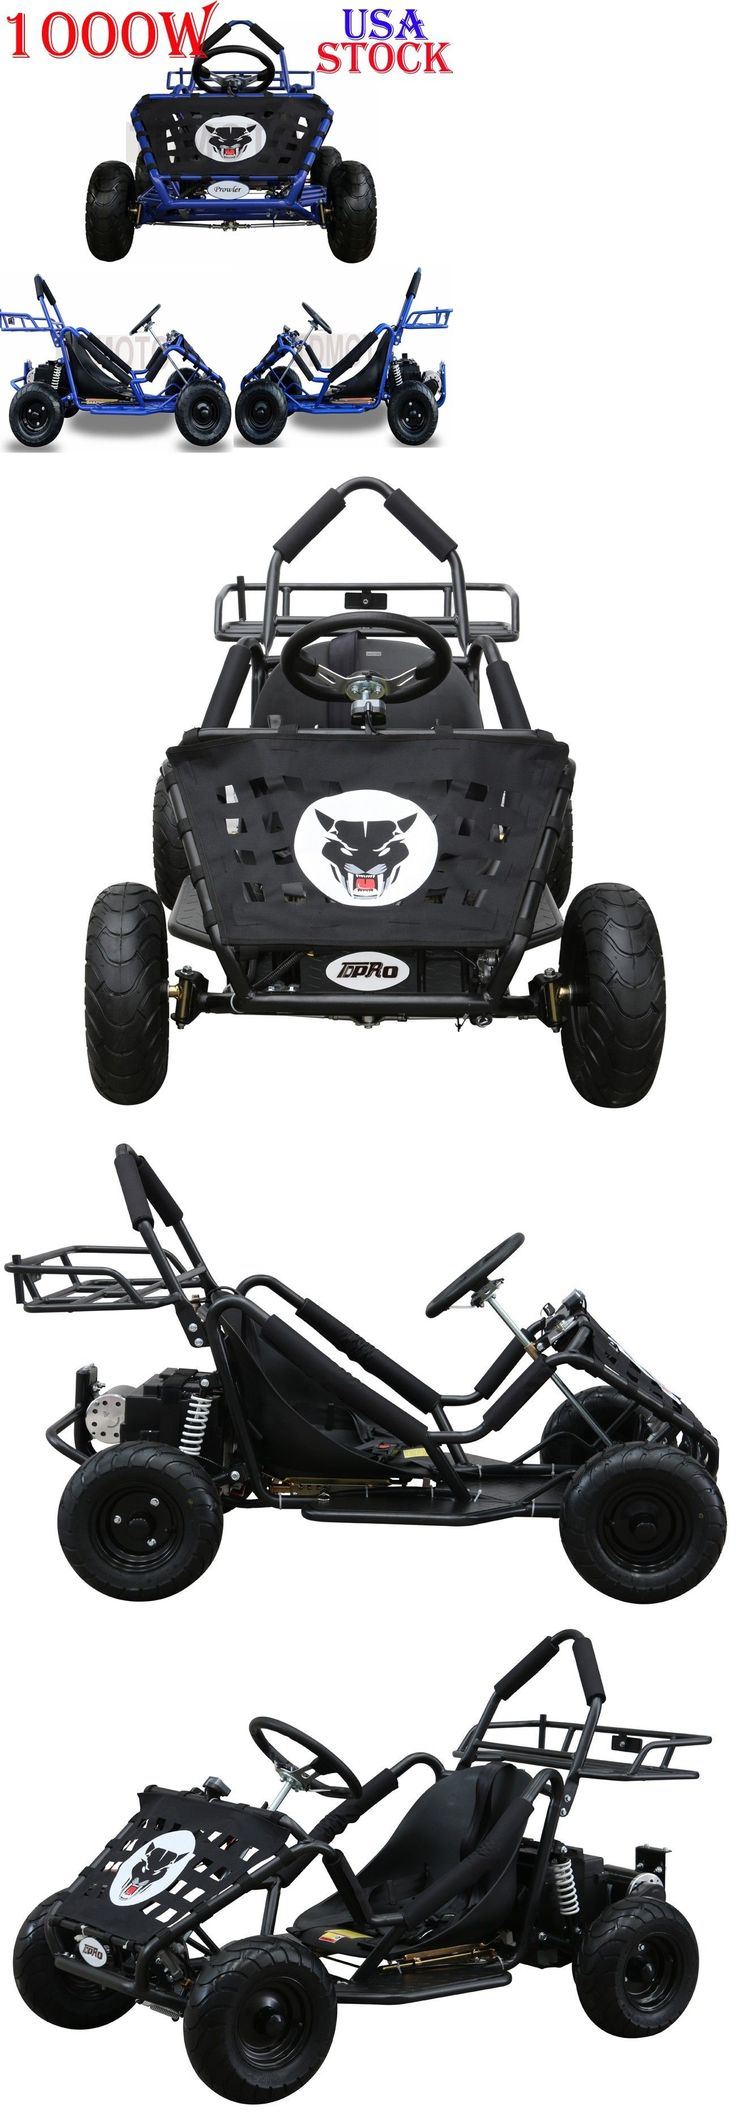 Complete Go-Karts and Frames 64656: 2017 Hot Sell 1000W 48V Off Road Electric Racing Mini Kids Go Kart Buggy -> BUY IT NOW ONLY: $749.99 on eBay!